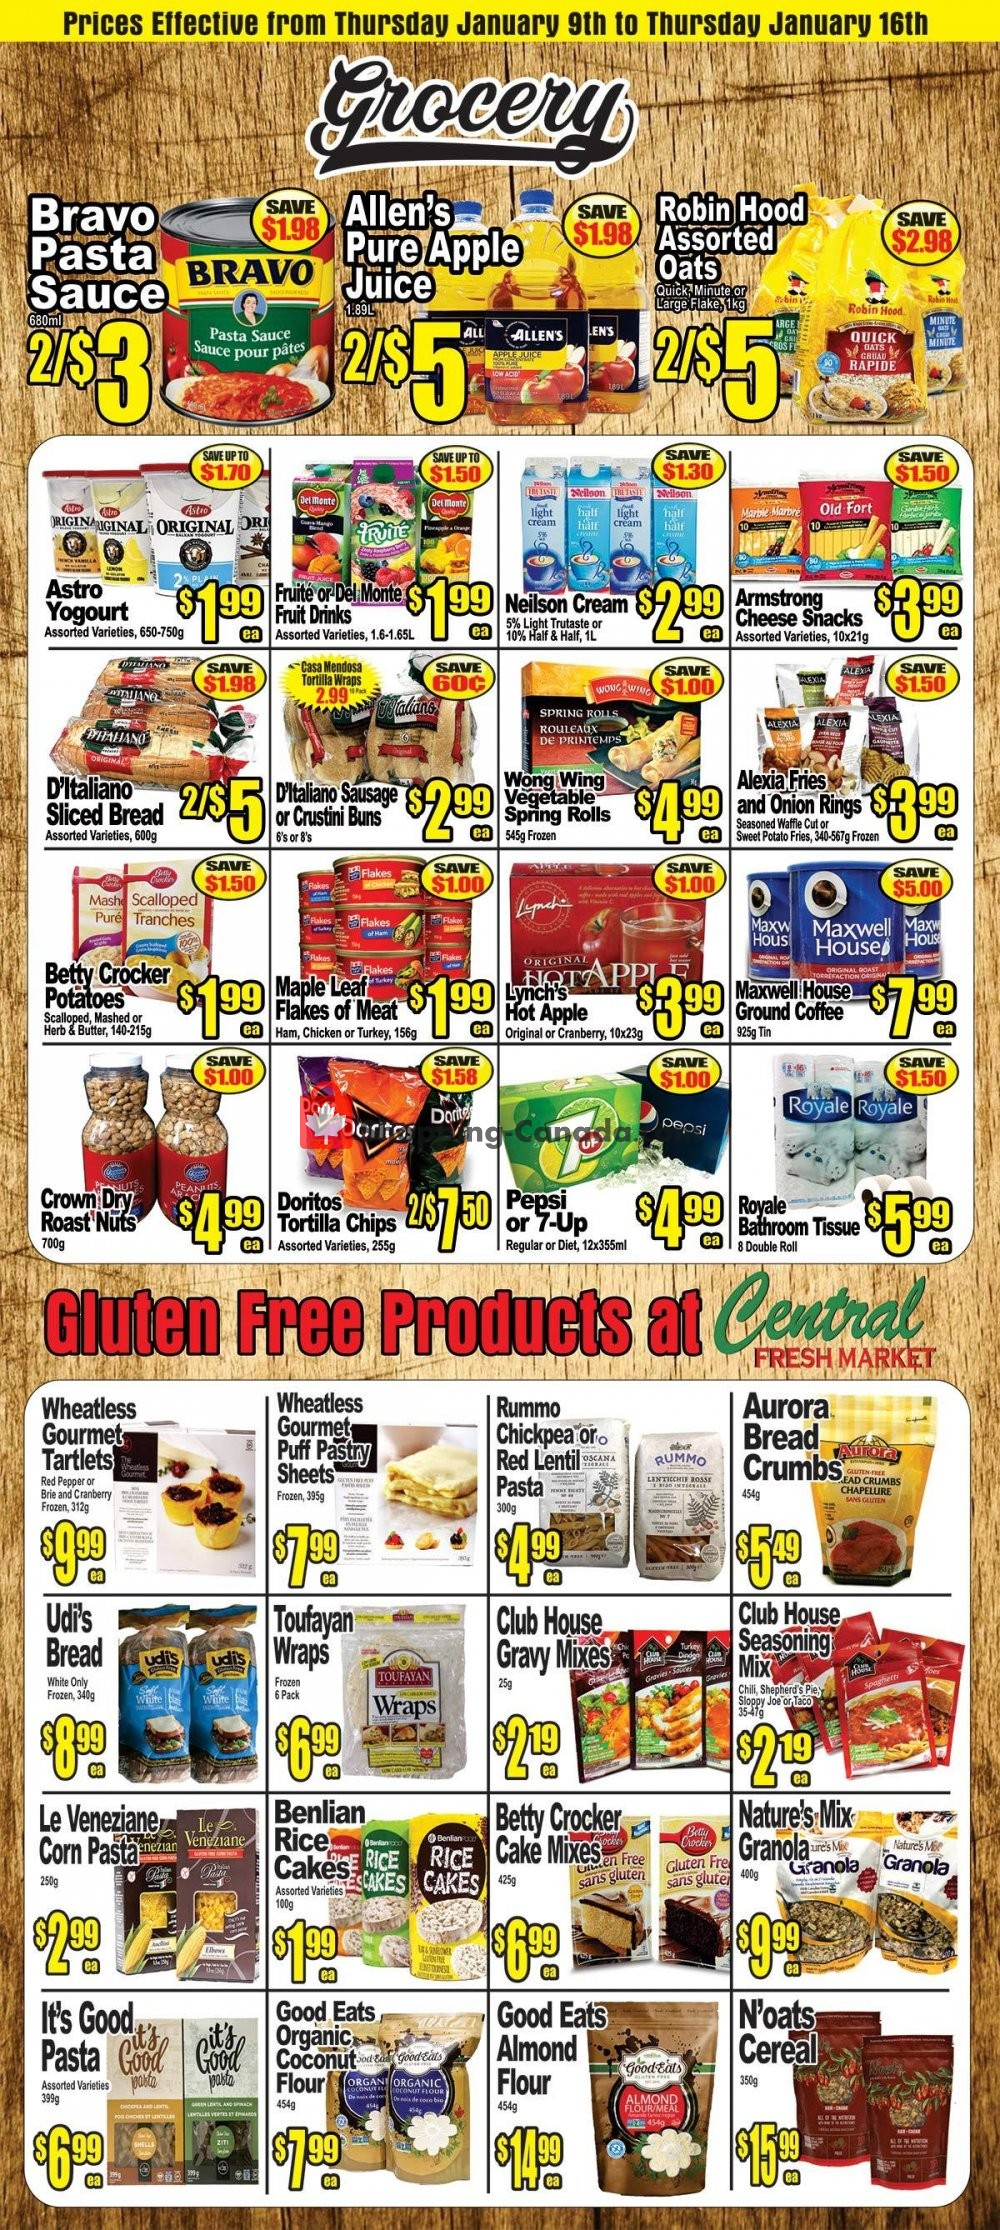 Flyer Central Fresh Market Canada - from Thursday January 9, 2020 to Thursday January 16, 2020